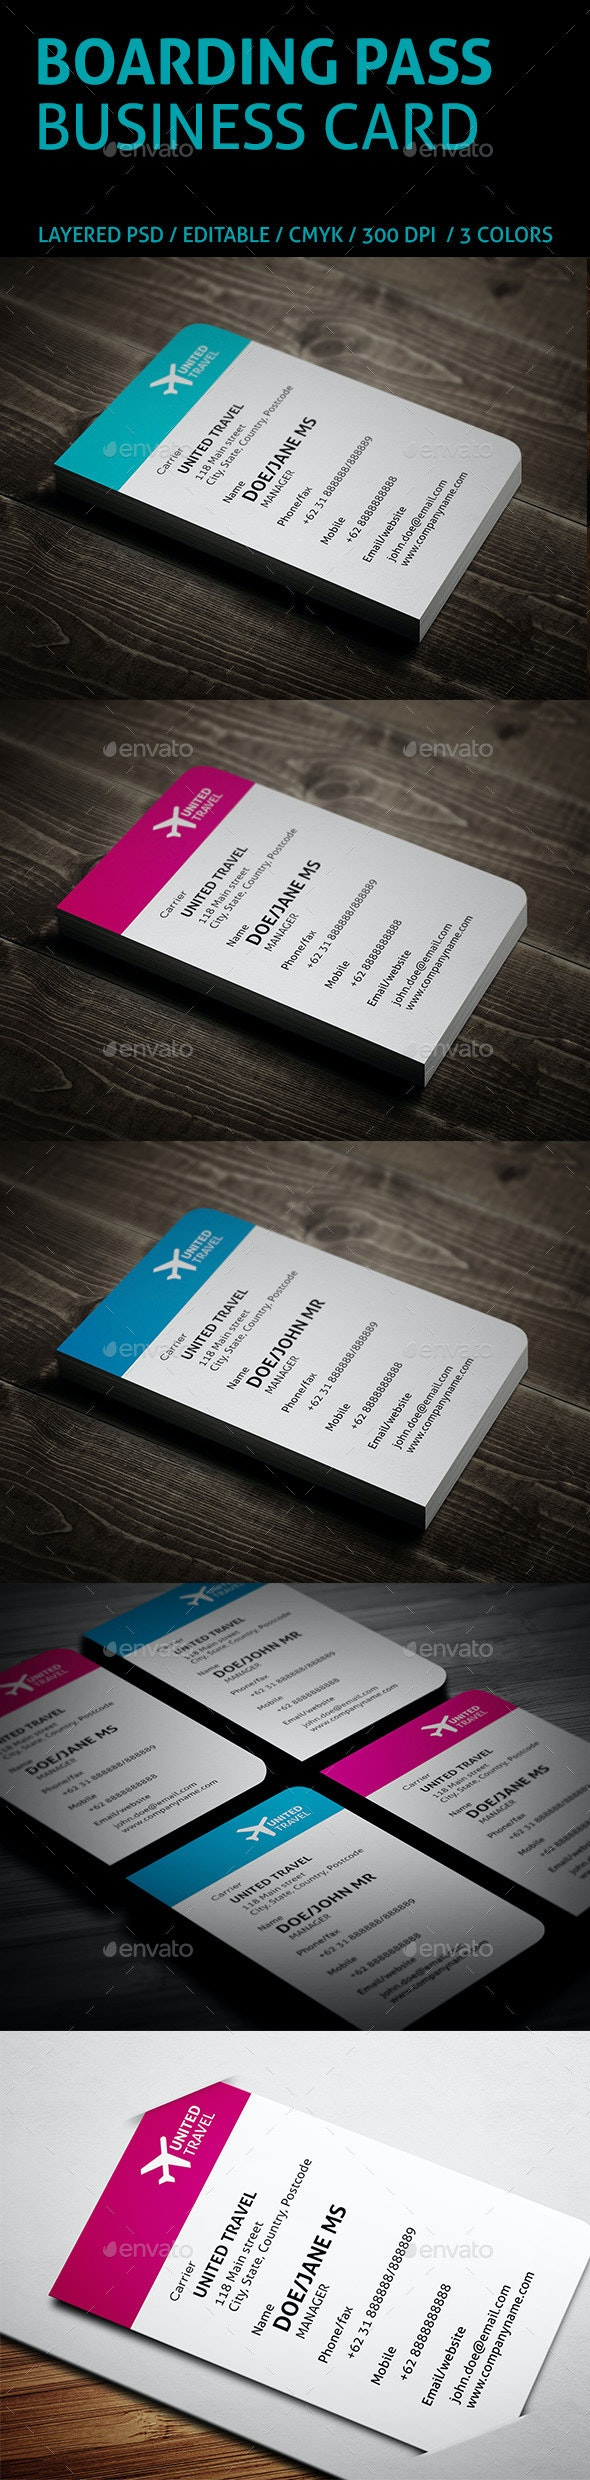 Creative Boarding Pass Business Card - Creative Business Cards